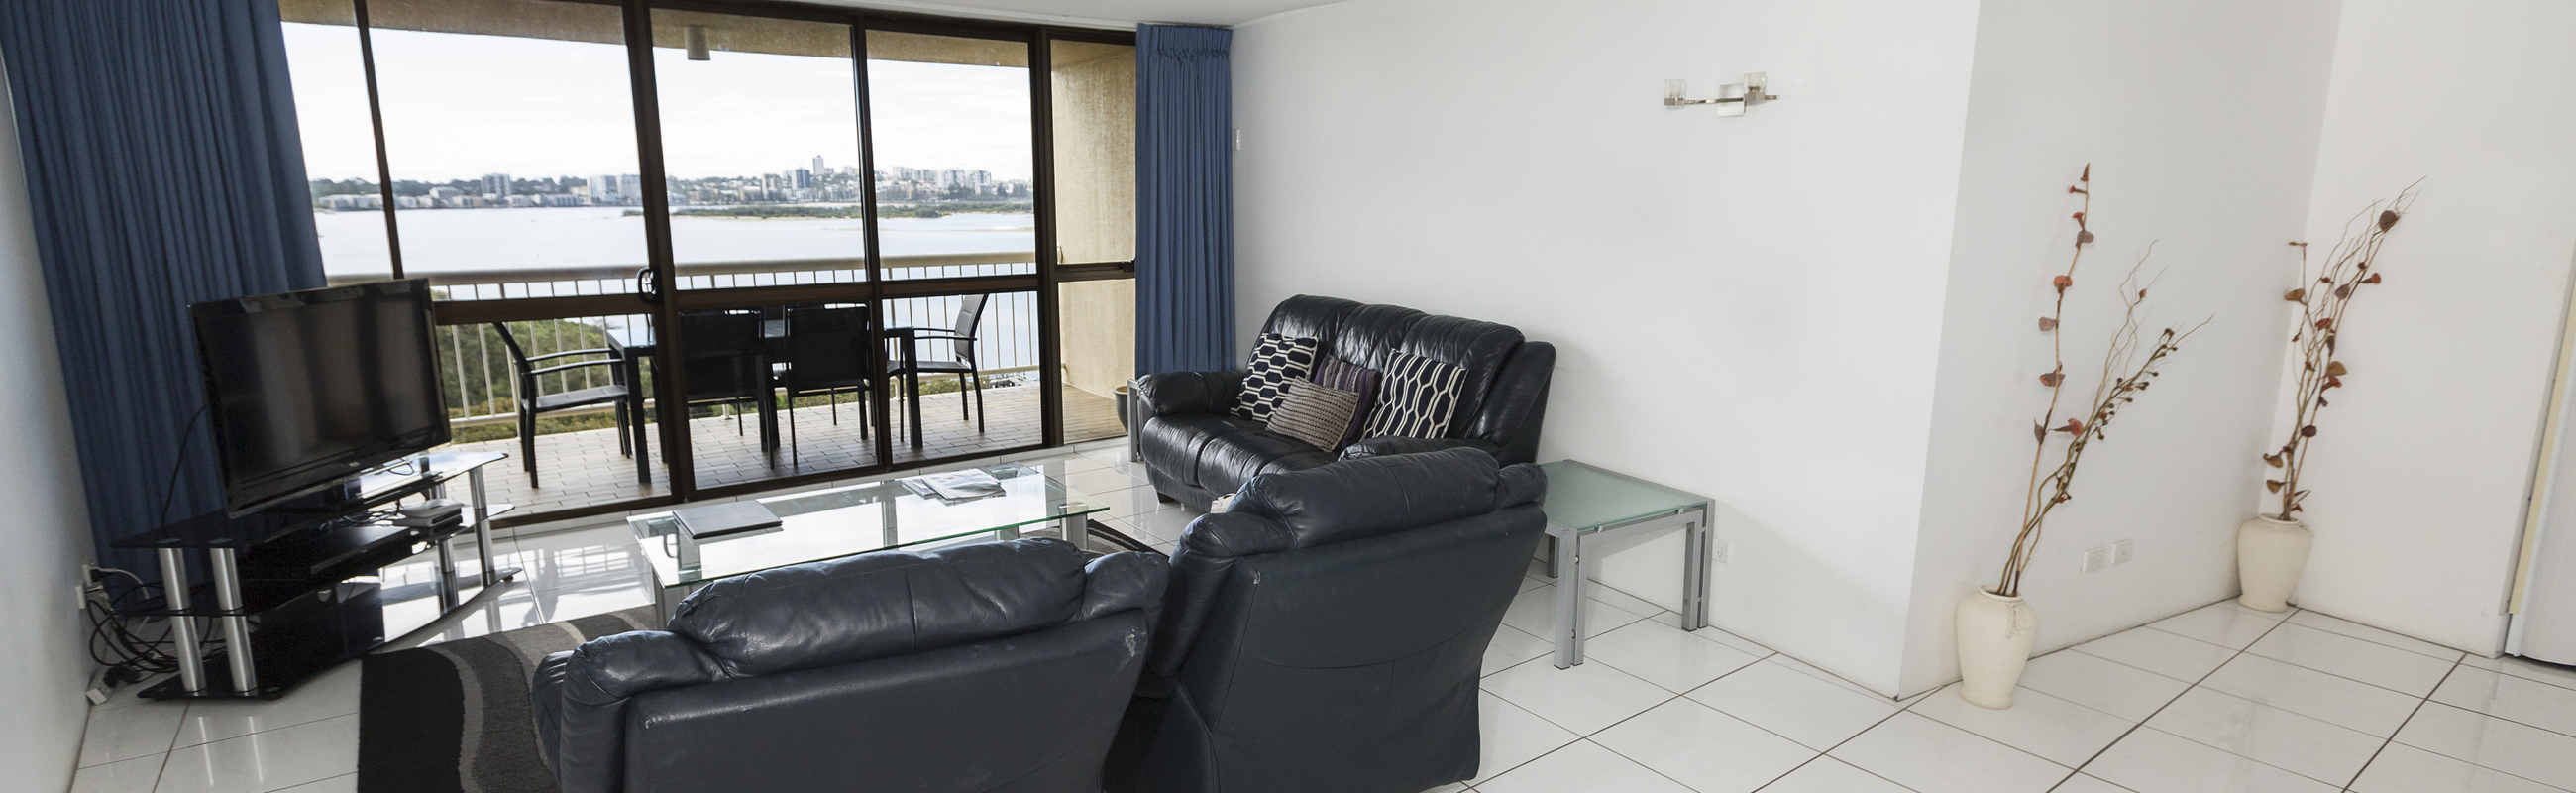 Golden Beach One bedroom holiday apartments